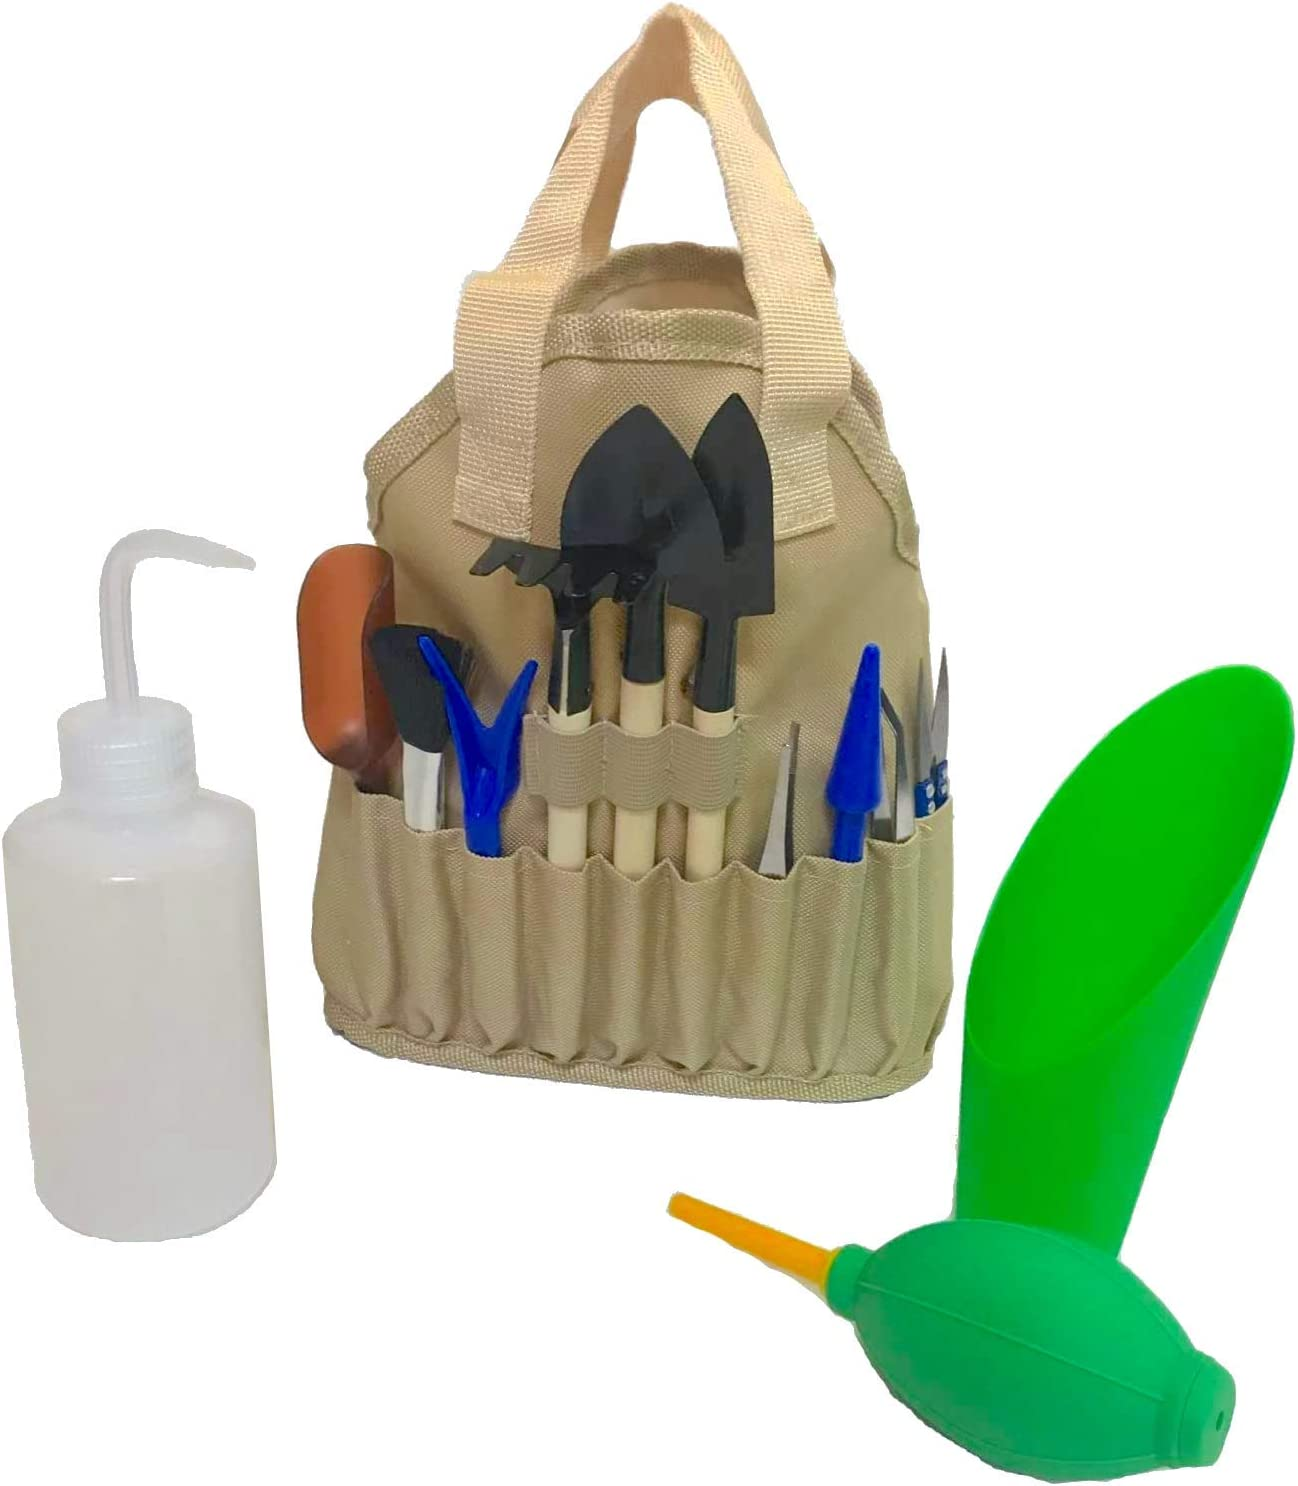 Succulent Kit Organizer Bag Gardening Tool Set Terrarium Supplies Mini Succulent Garden Tool Kit Succulent Bonsai Planter Set Indoor Gardening Fairy Zen Kit for Soil Fertilizer Seeds